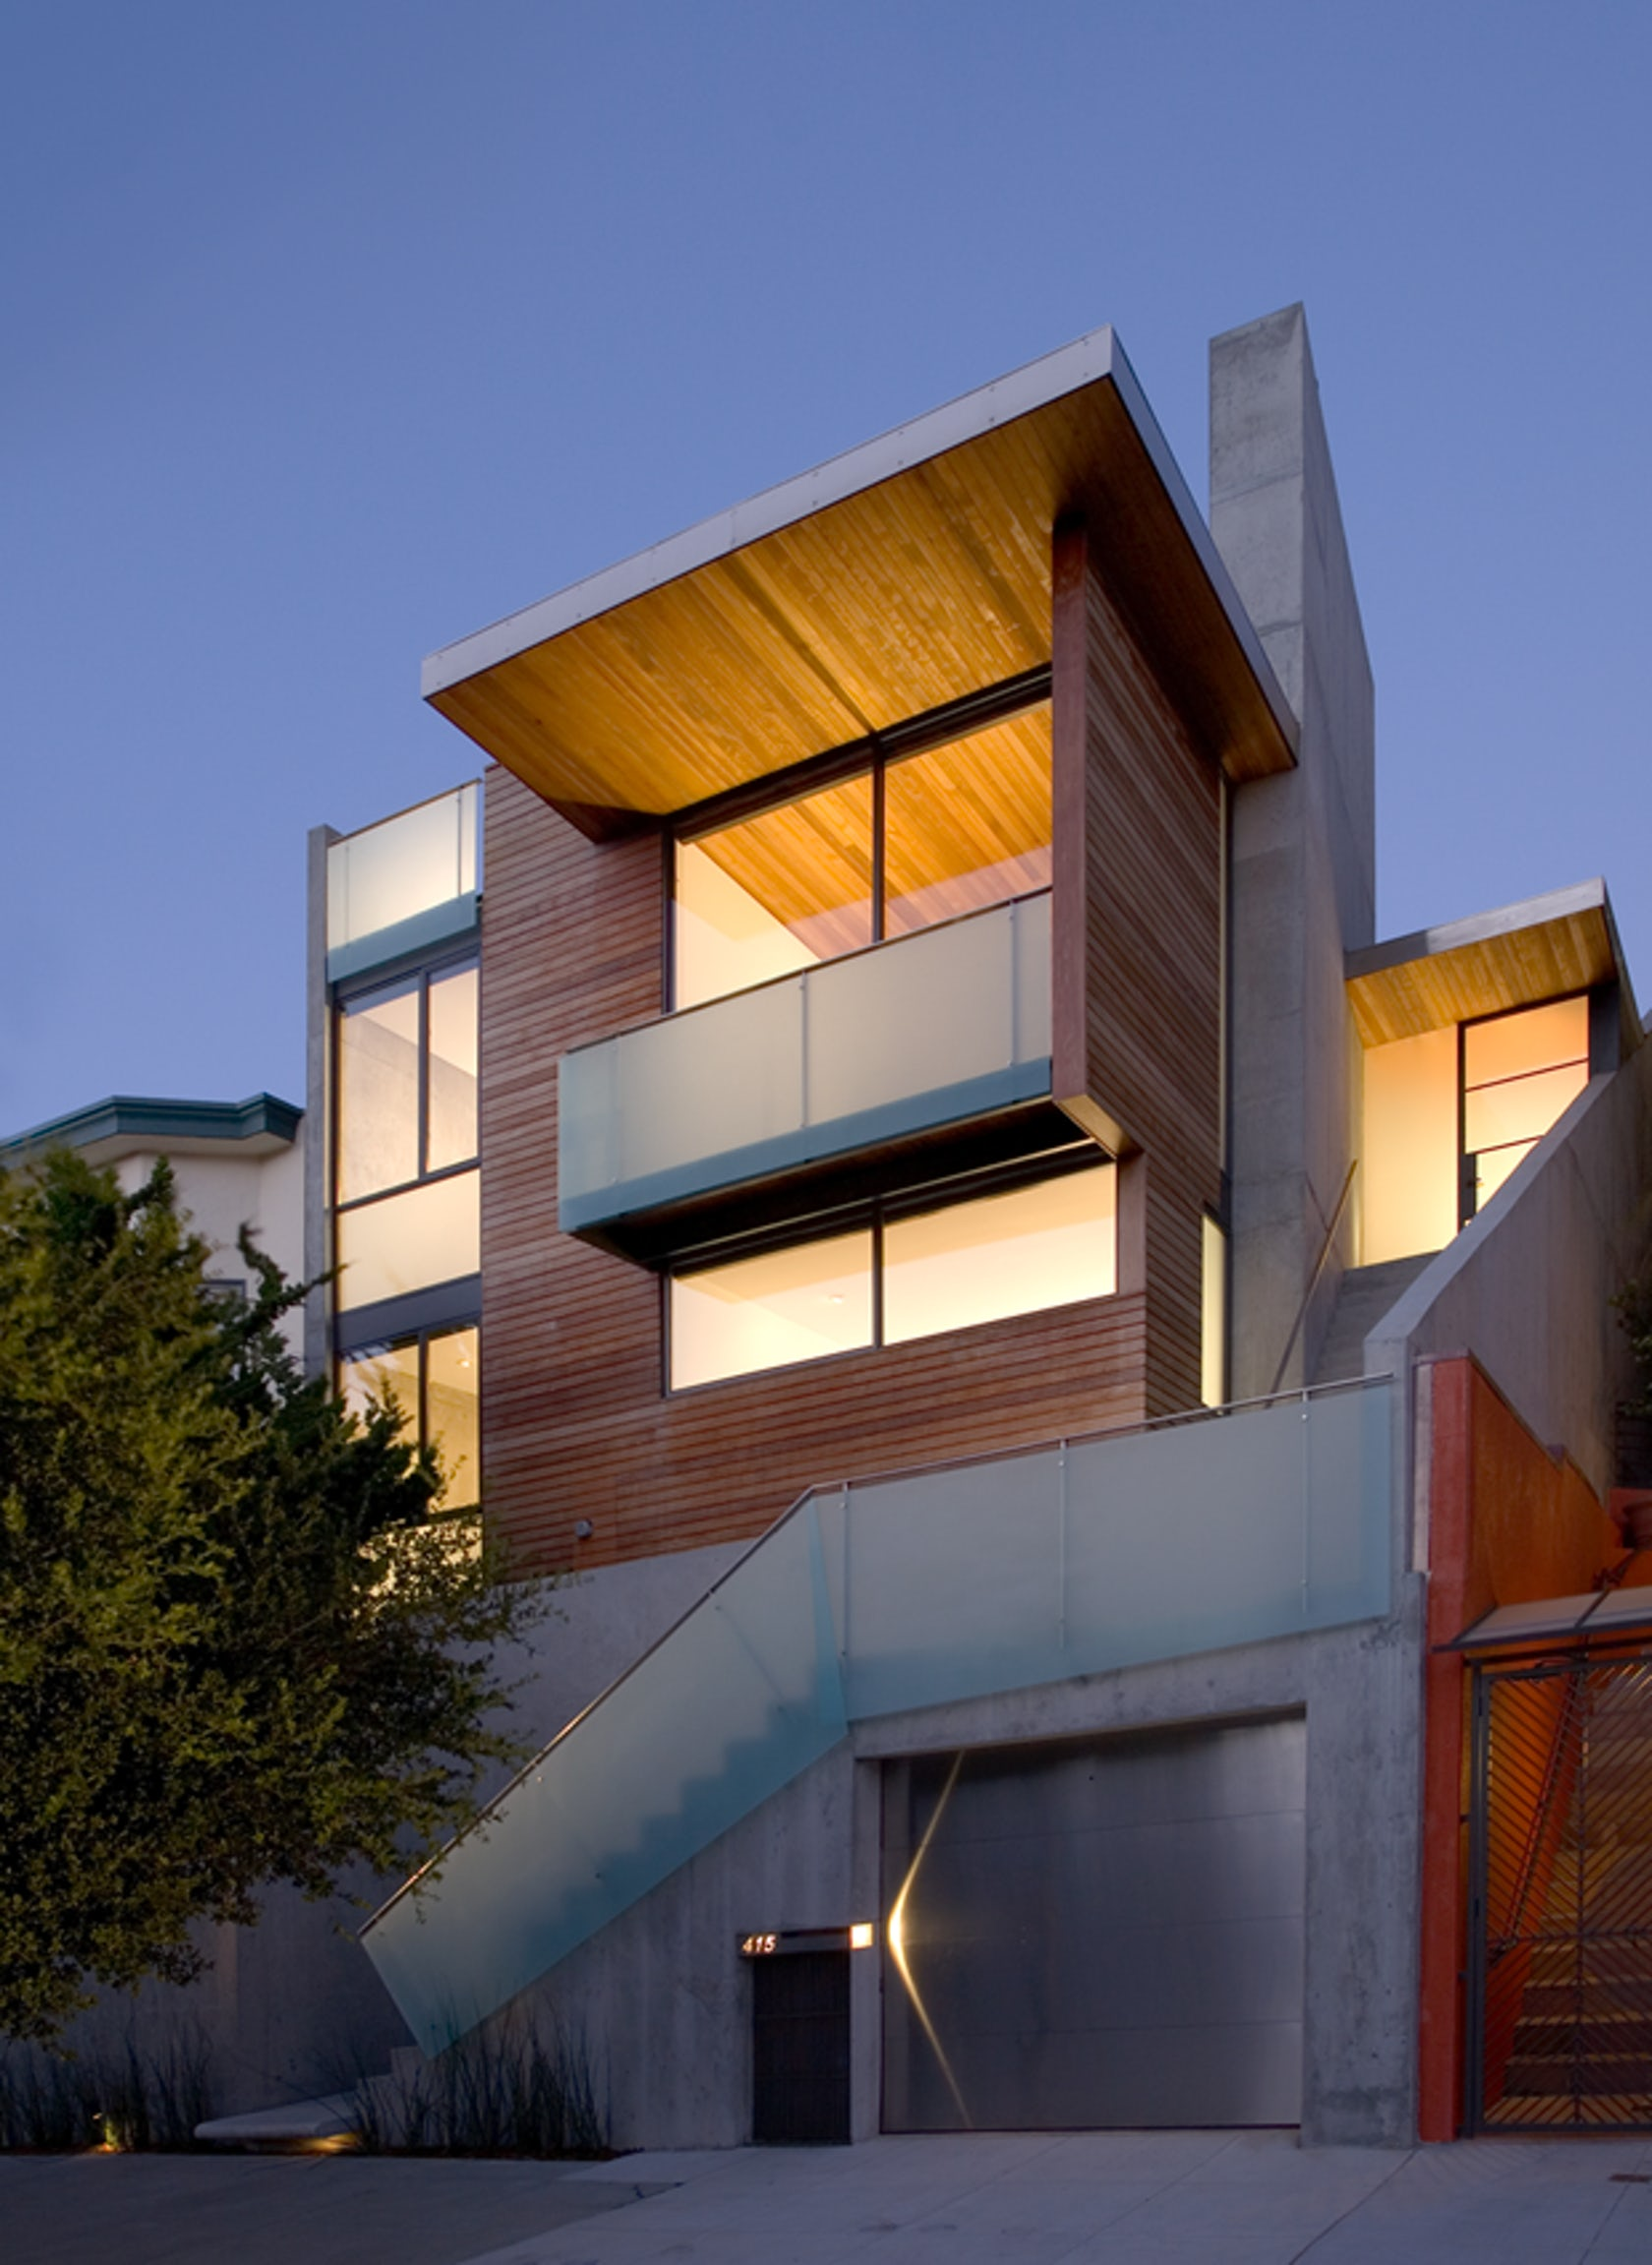 Diamond project architizer - Residence choy terry terry architecture ...